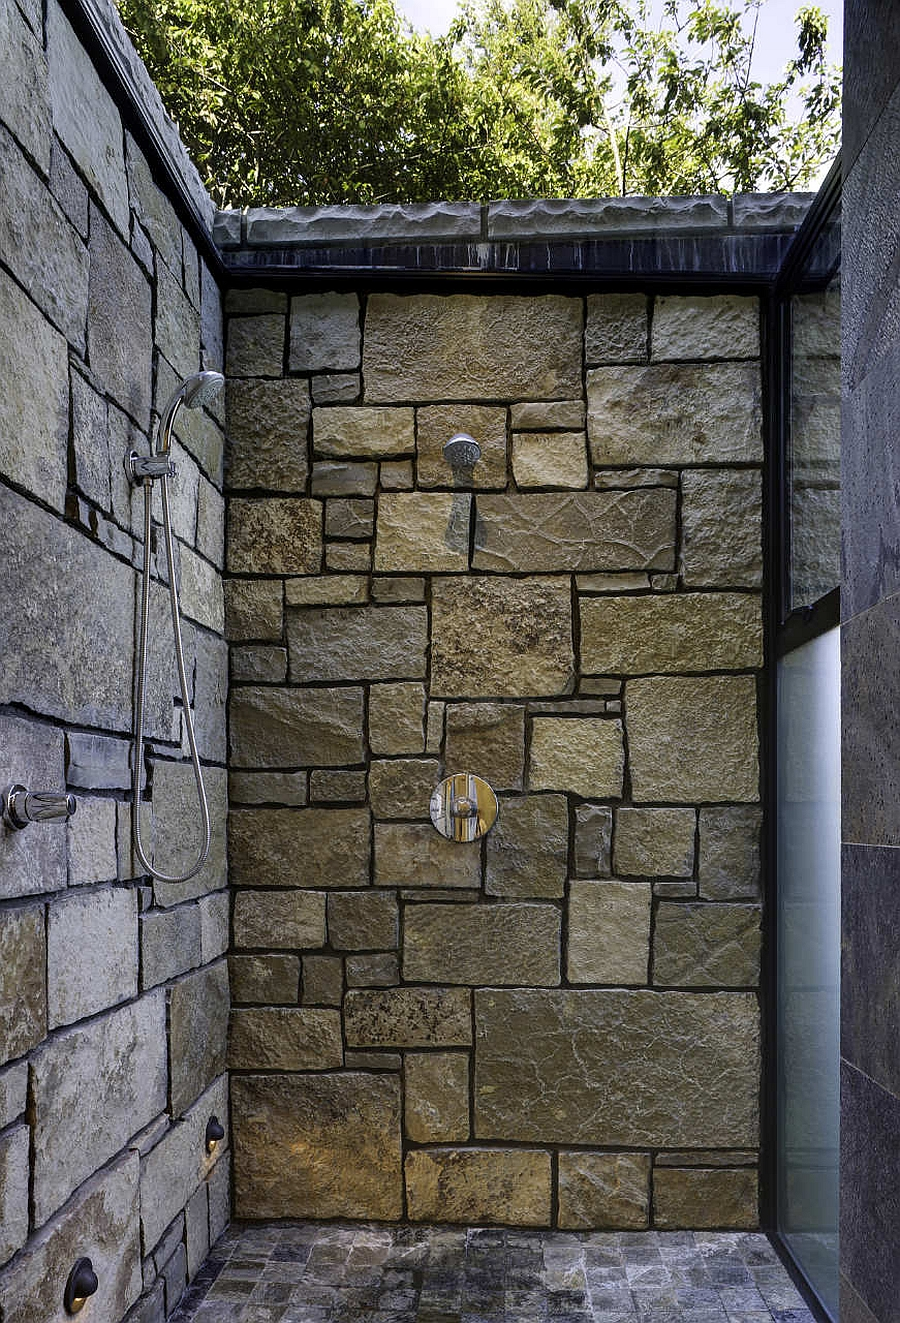 Shower area that is left open to the natural beauty outside